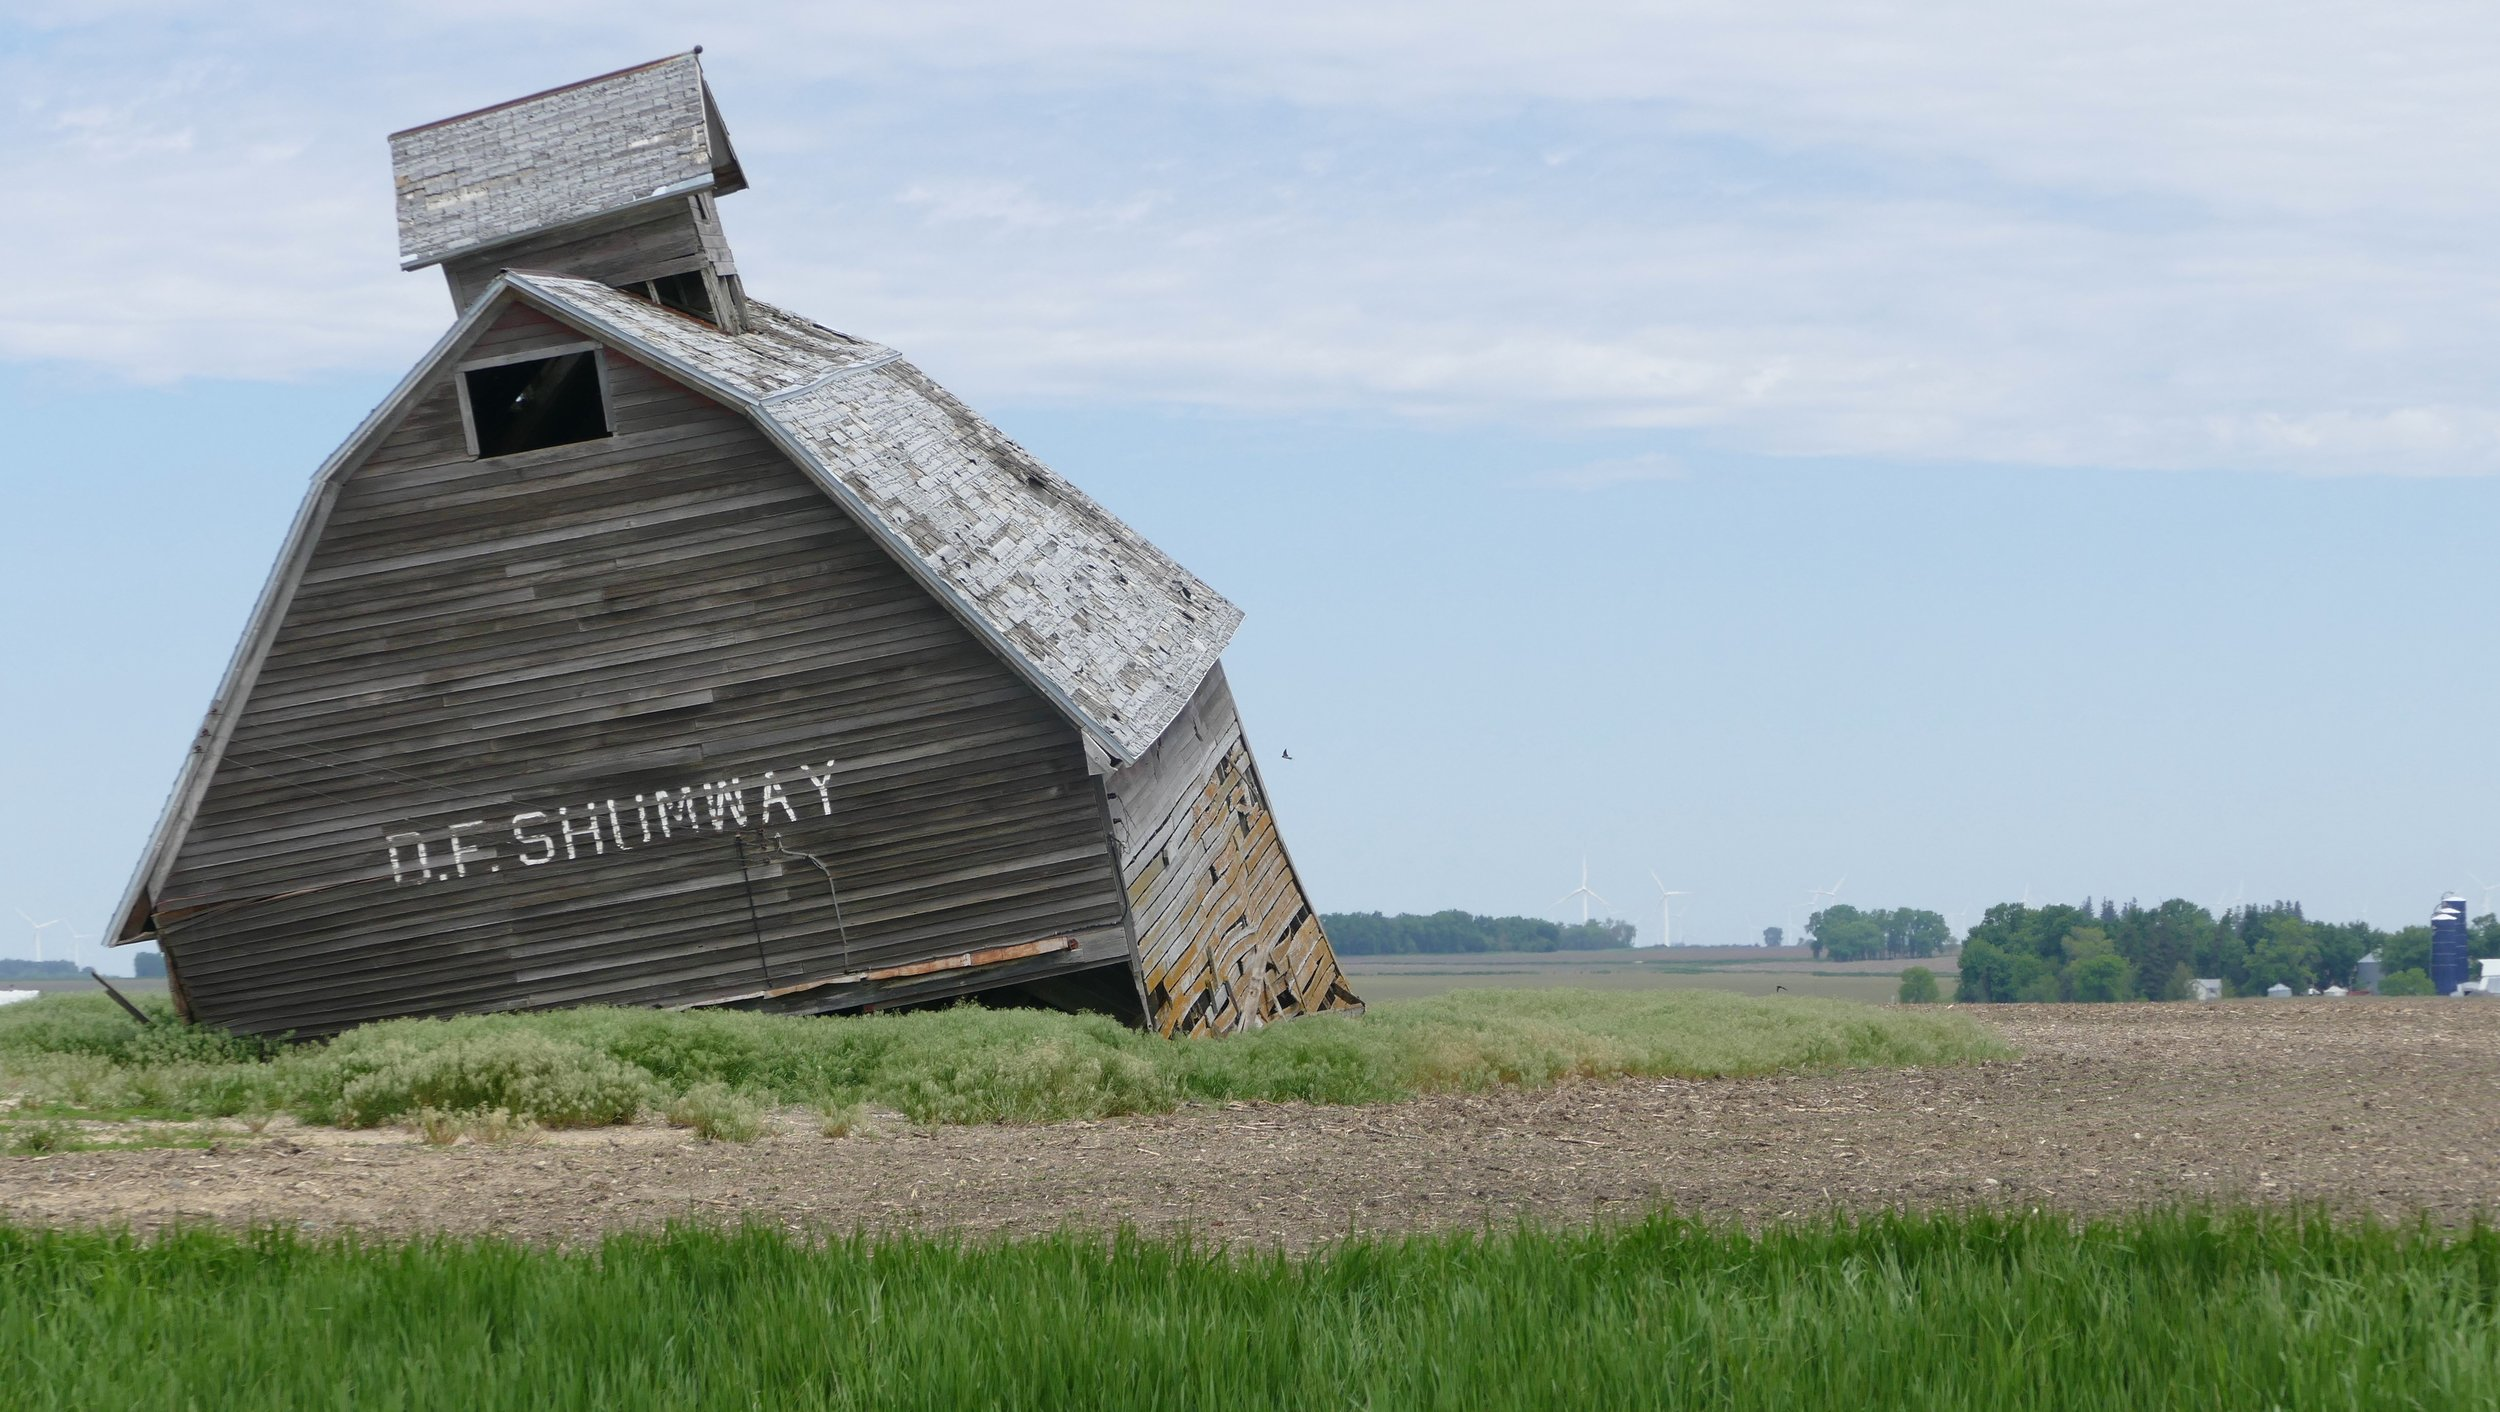 I was starting to feel like this barn as I biked across Iowa, a bit weighted down by reality.